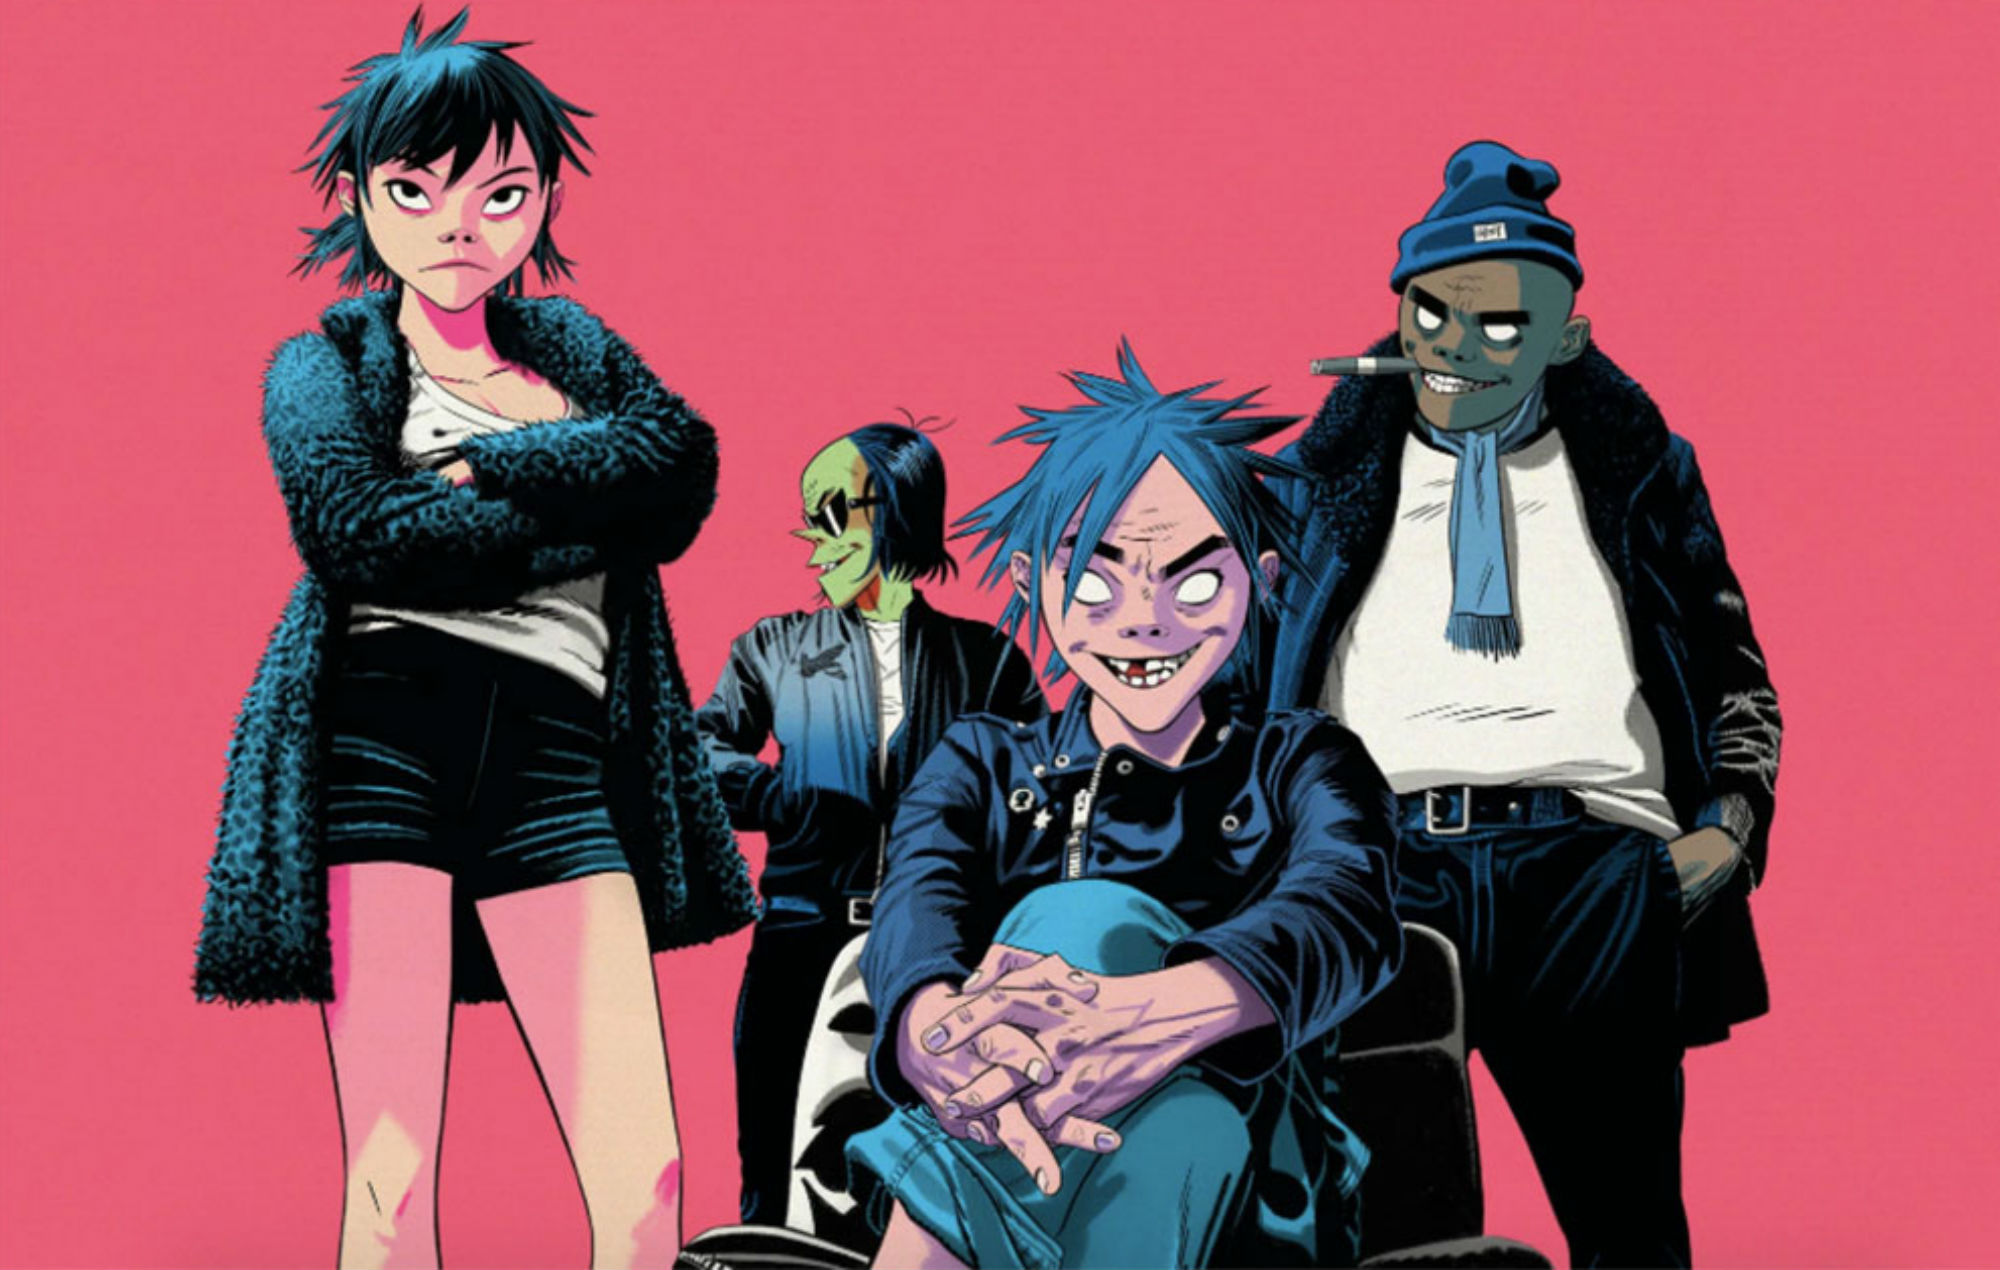 Fans criticise Gorillaz for selling NFT after impact on climate change revealed